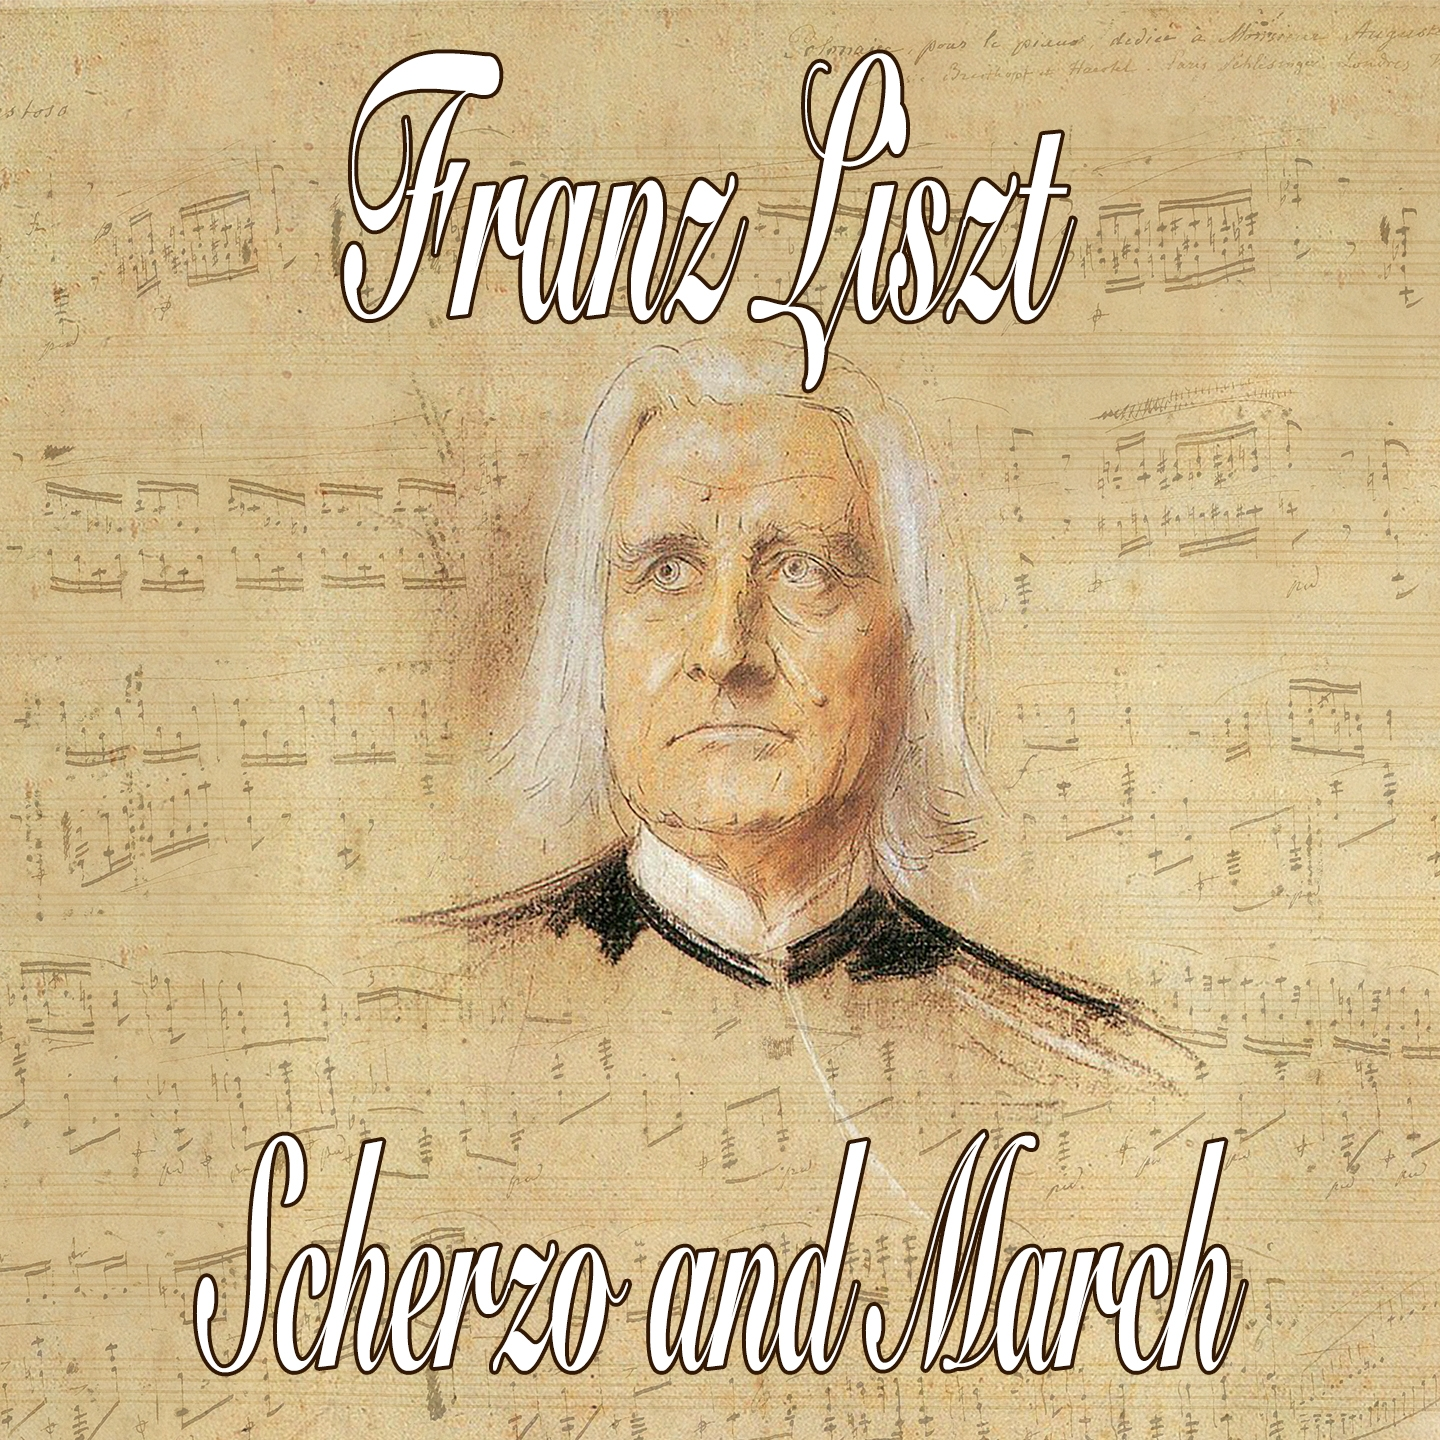 Liszt: Scherzo and March